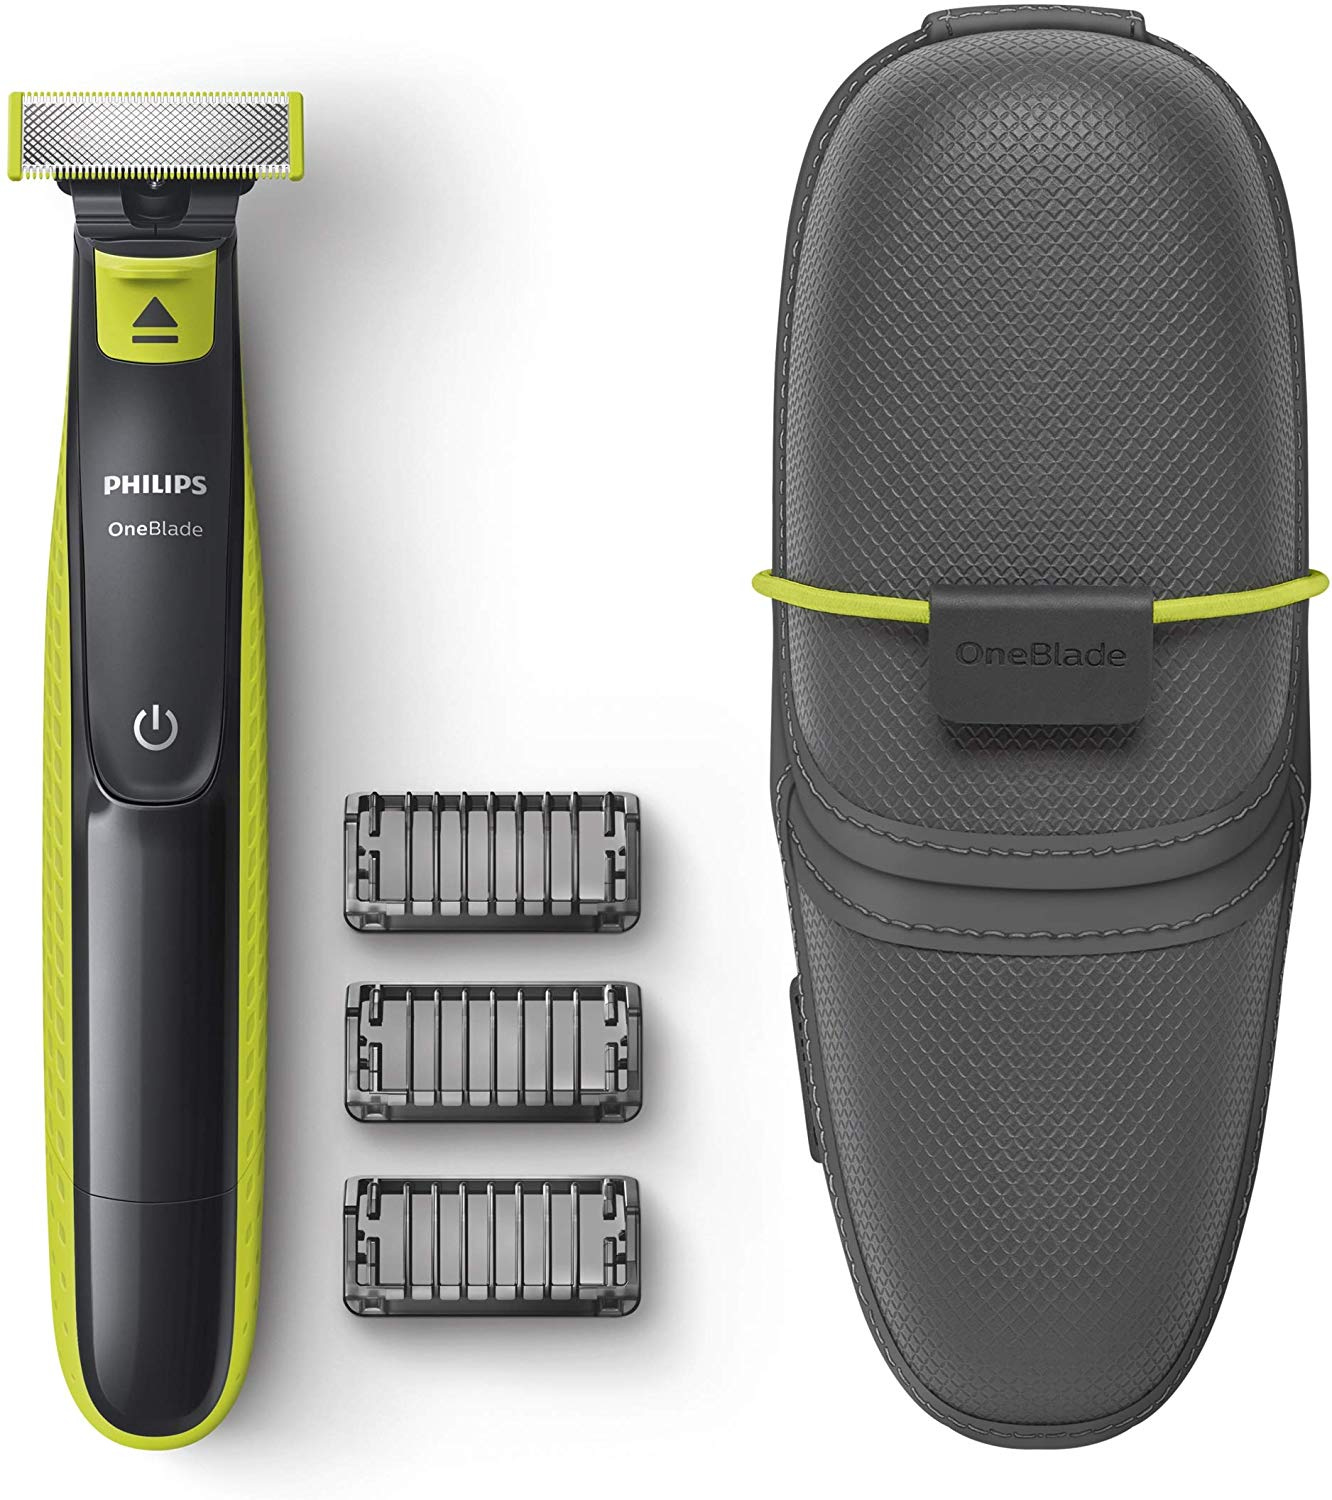 Philips Oneblade Barttrimmer amazon